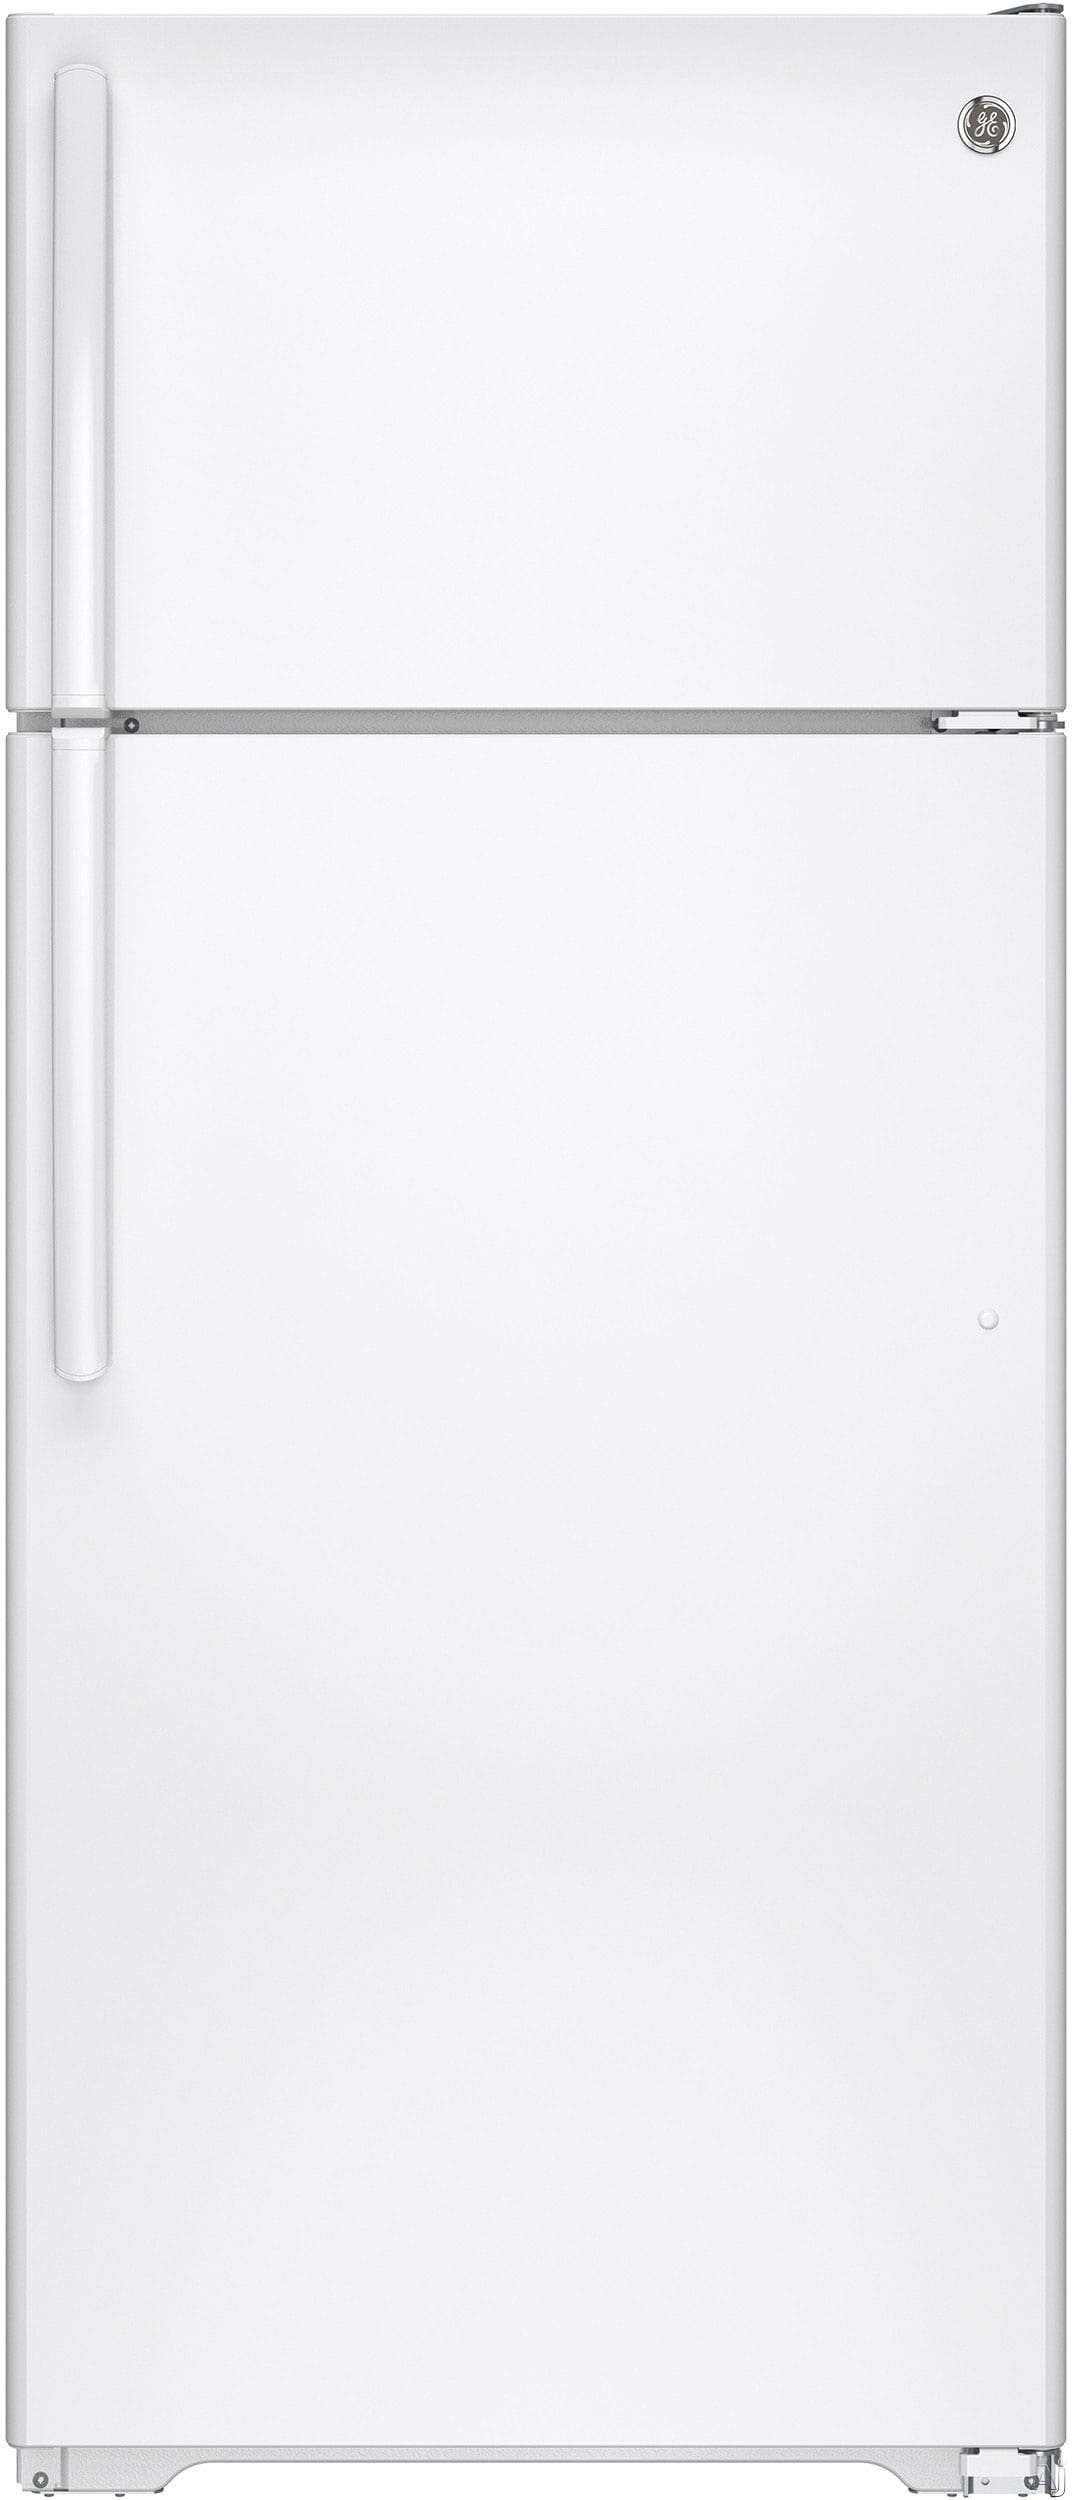 The white GAS18PGJWW costs about $100 less than the stainless, but is otherwise identical.